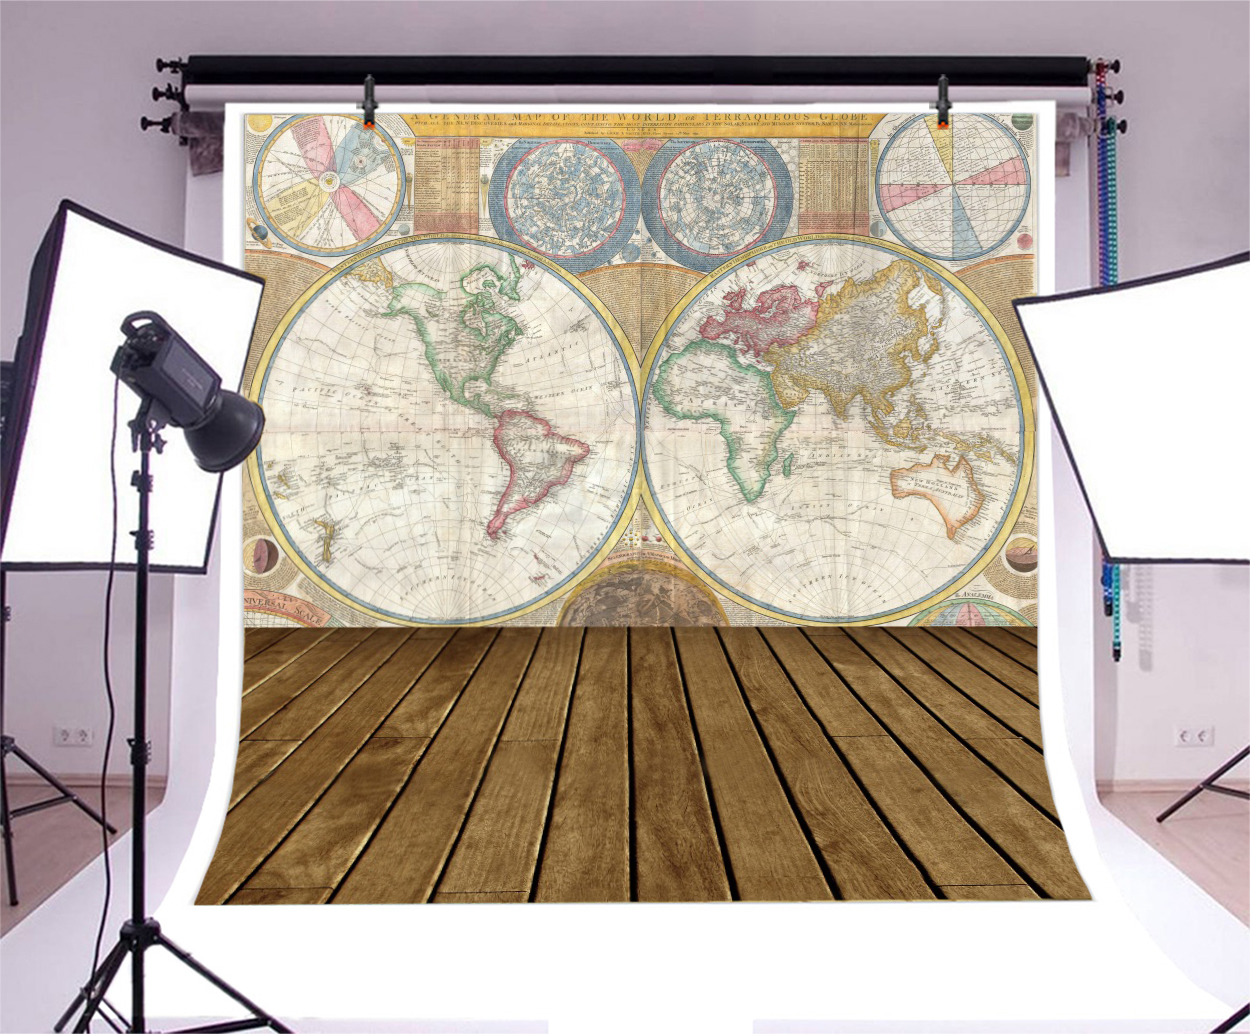 Antique World Map Board Vinyl Photography Backdrop Background Studio